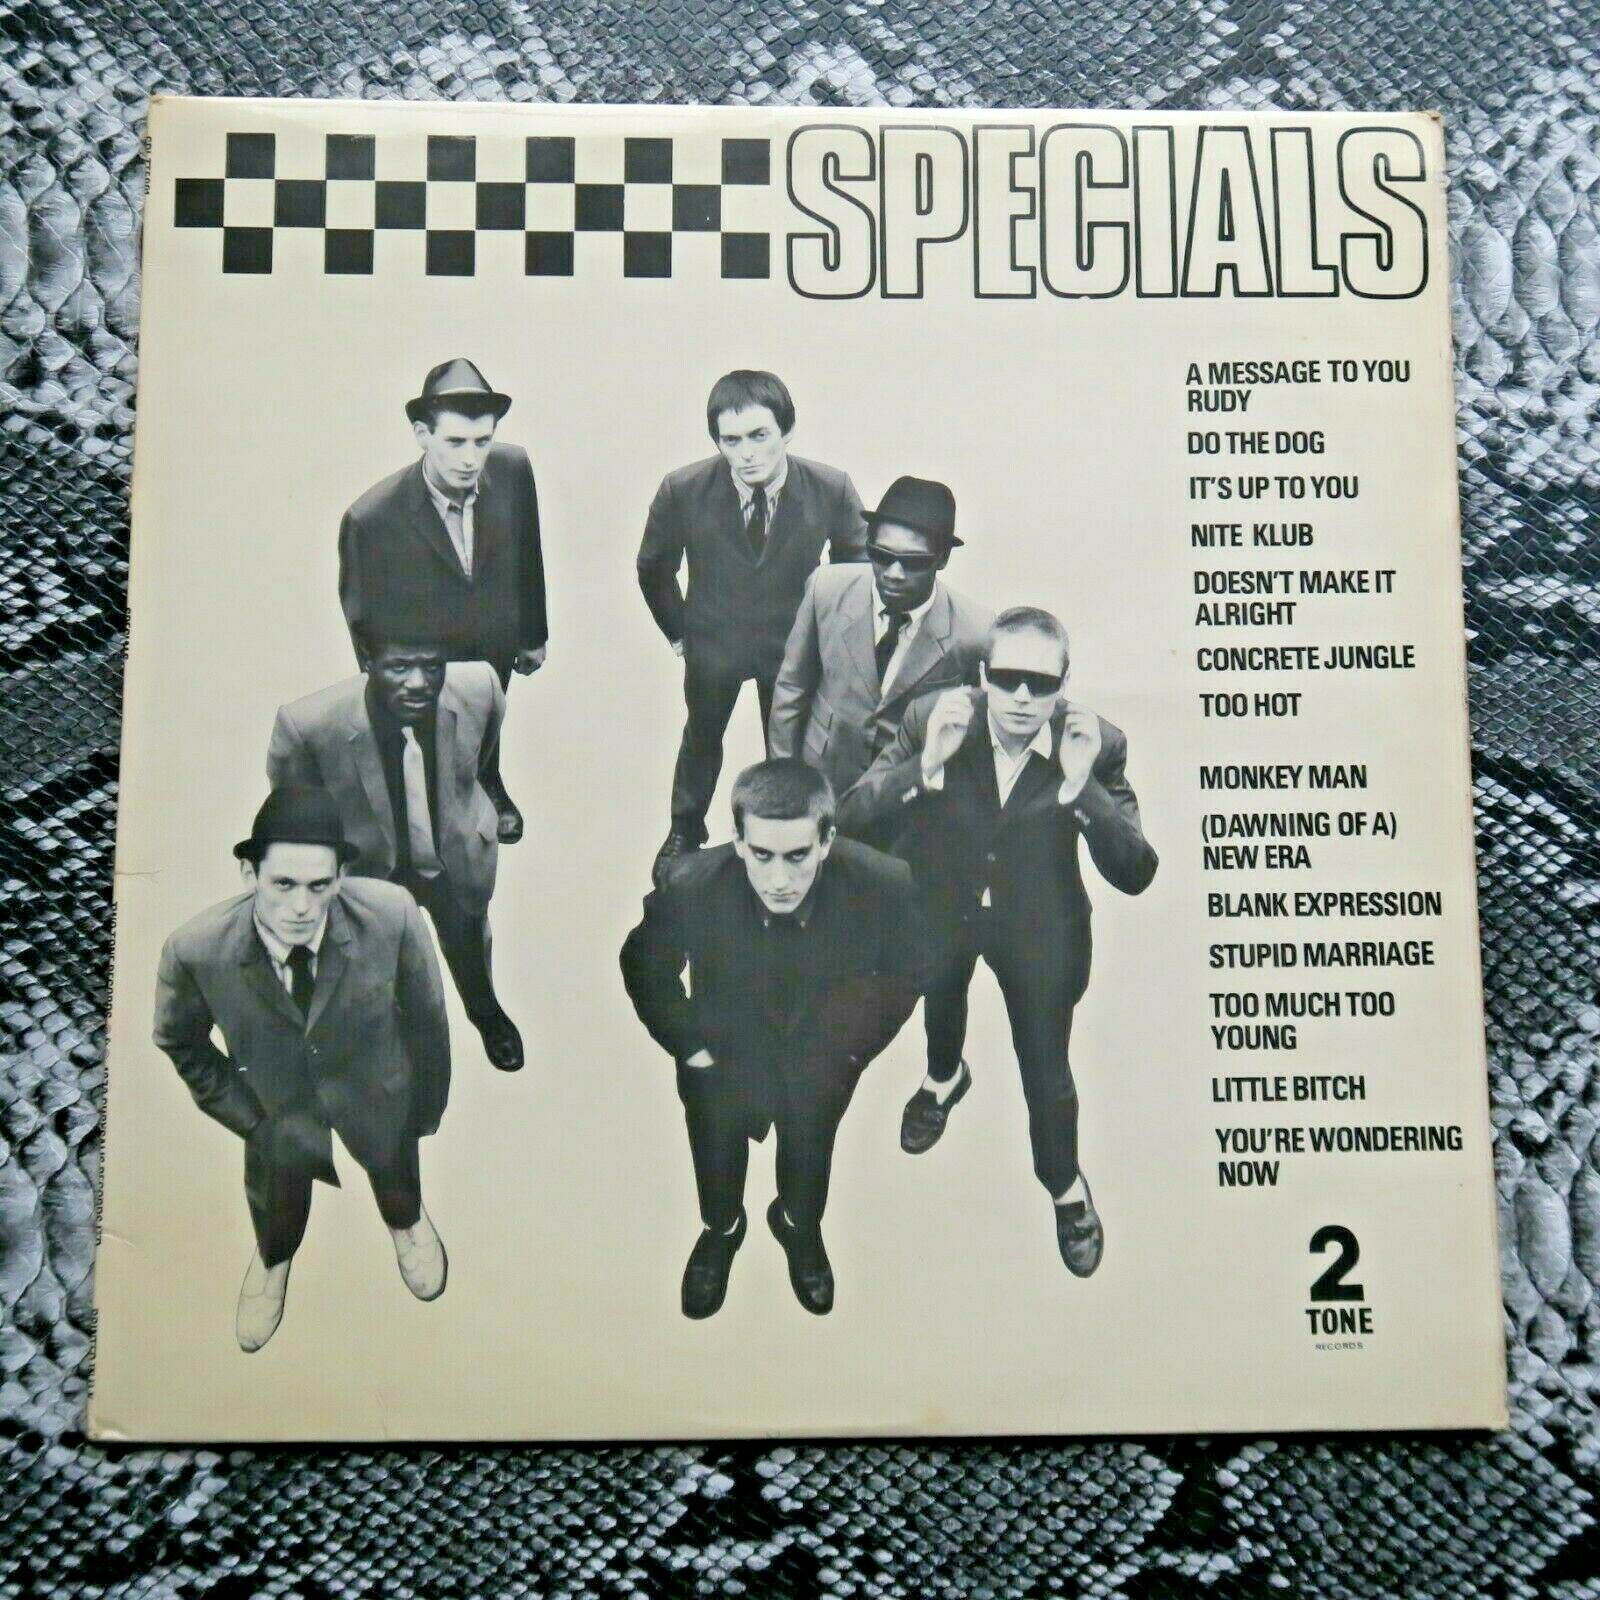 Specials Self Titled Two-Tone First pressing Ska UK LP 2-Tone Two-Tone Records